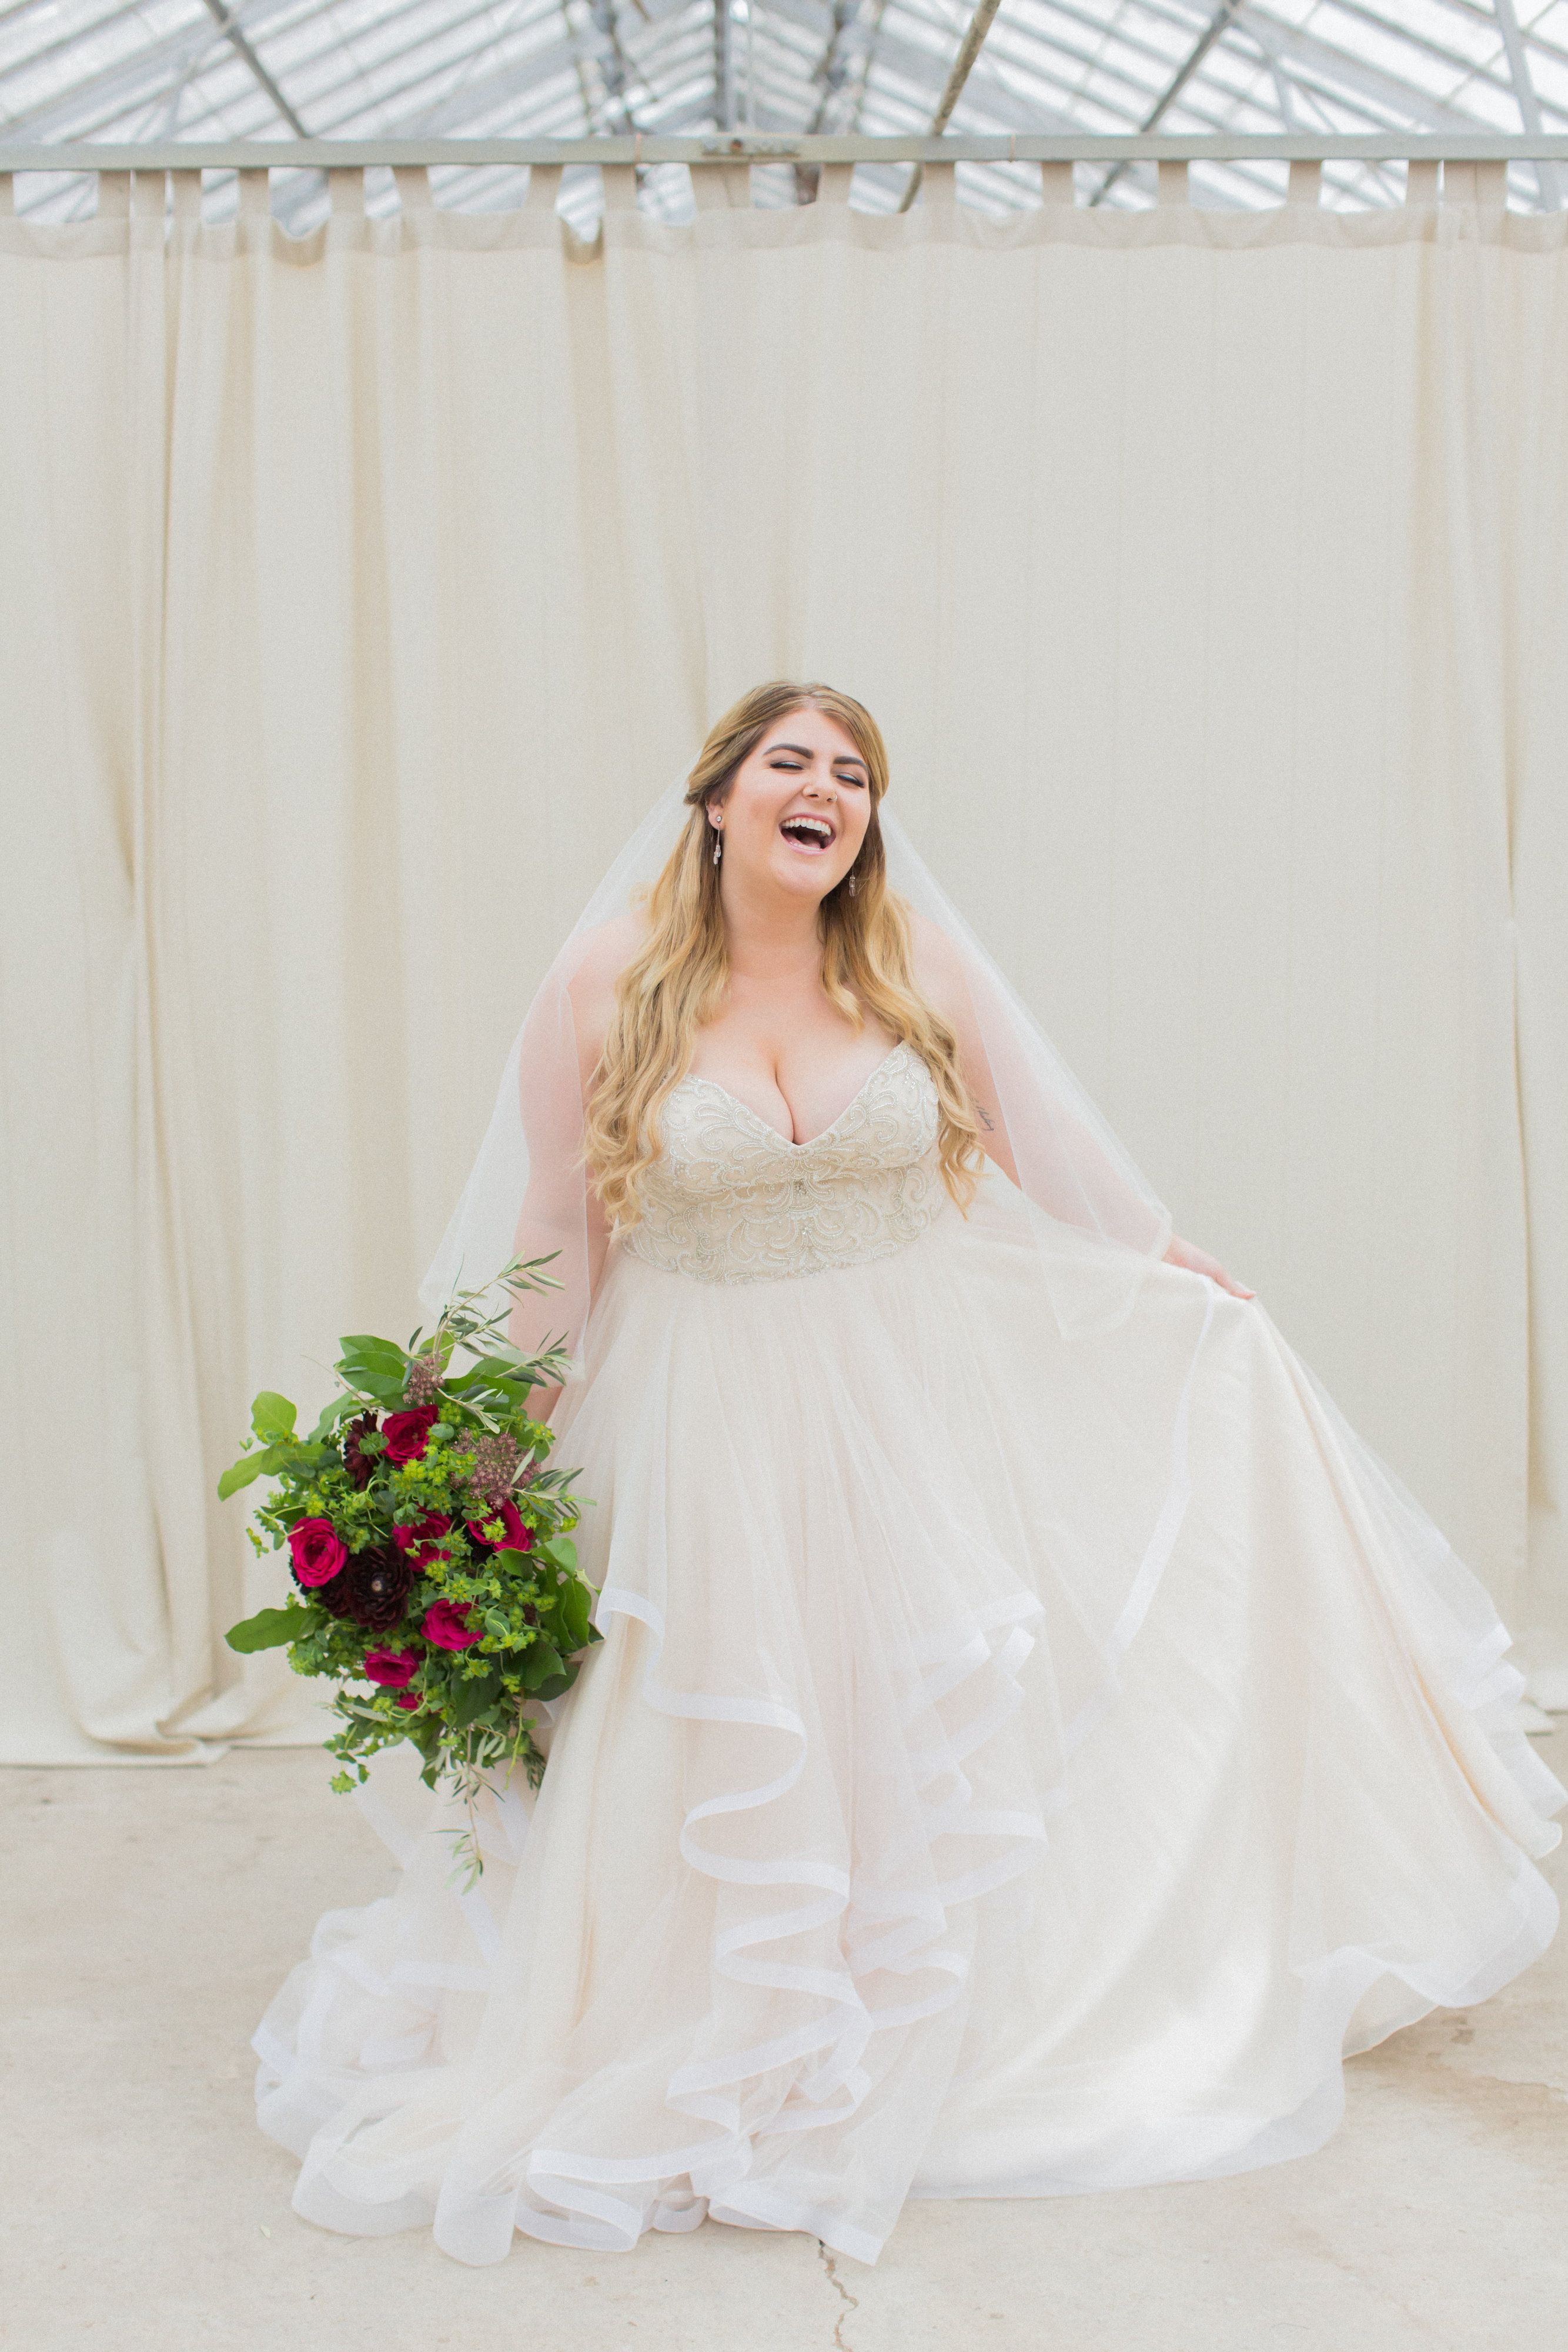 Shopping For A Plus Size Wedding Gown Can Be Intimidating But Not At Della Curva Where Shopping For Plus Size Wedding Wedding Dresses Plus Size Wedding Gowns